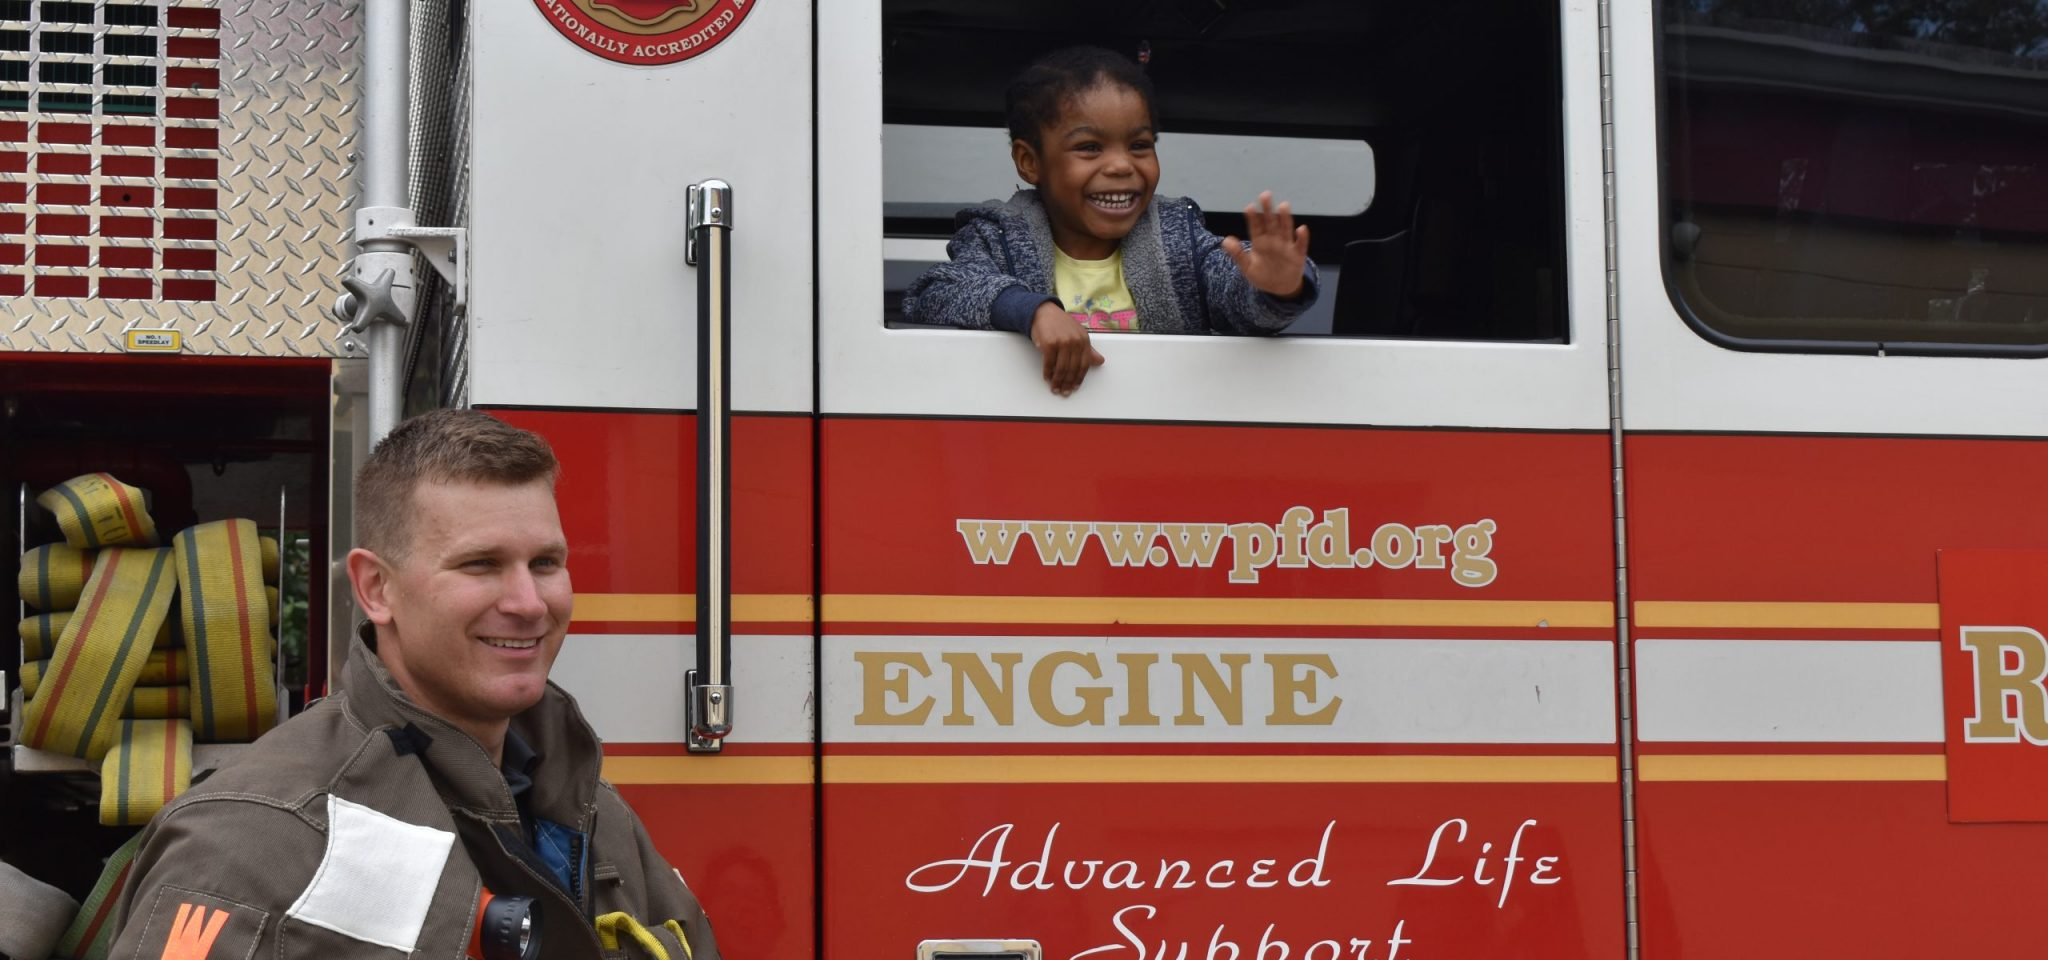 Firefighter posing for photo with young girl